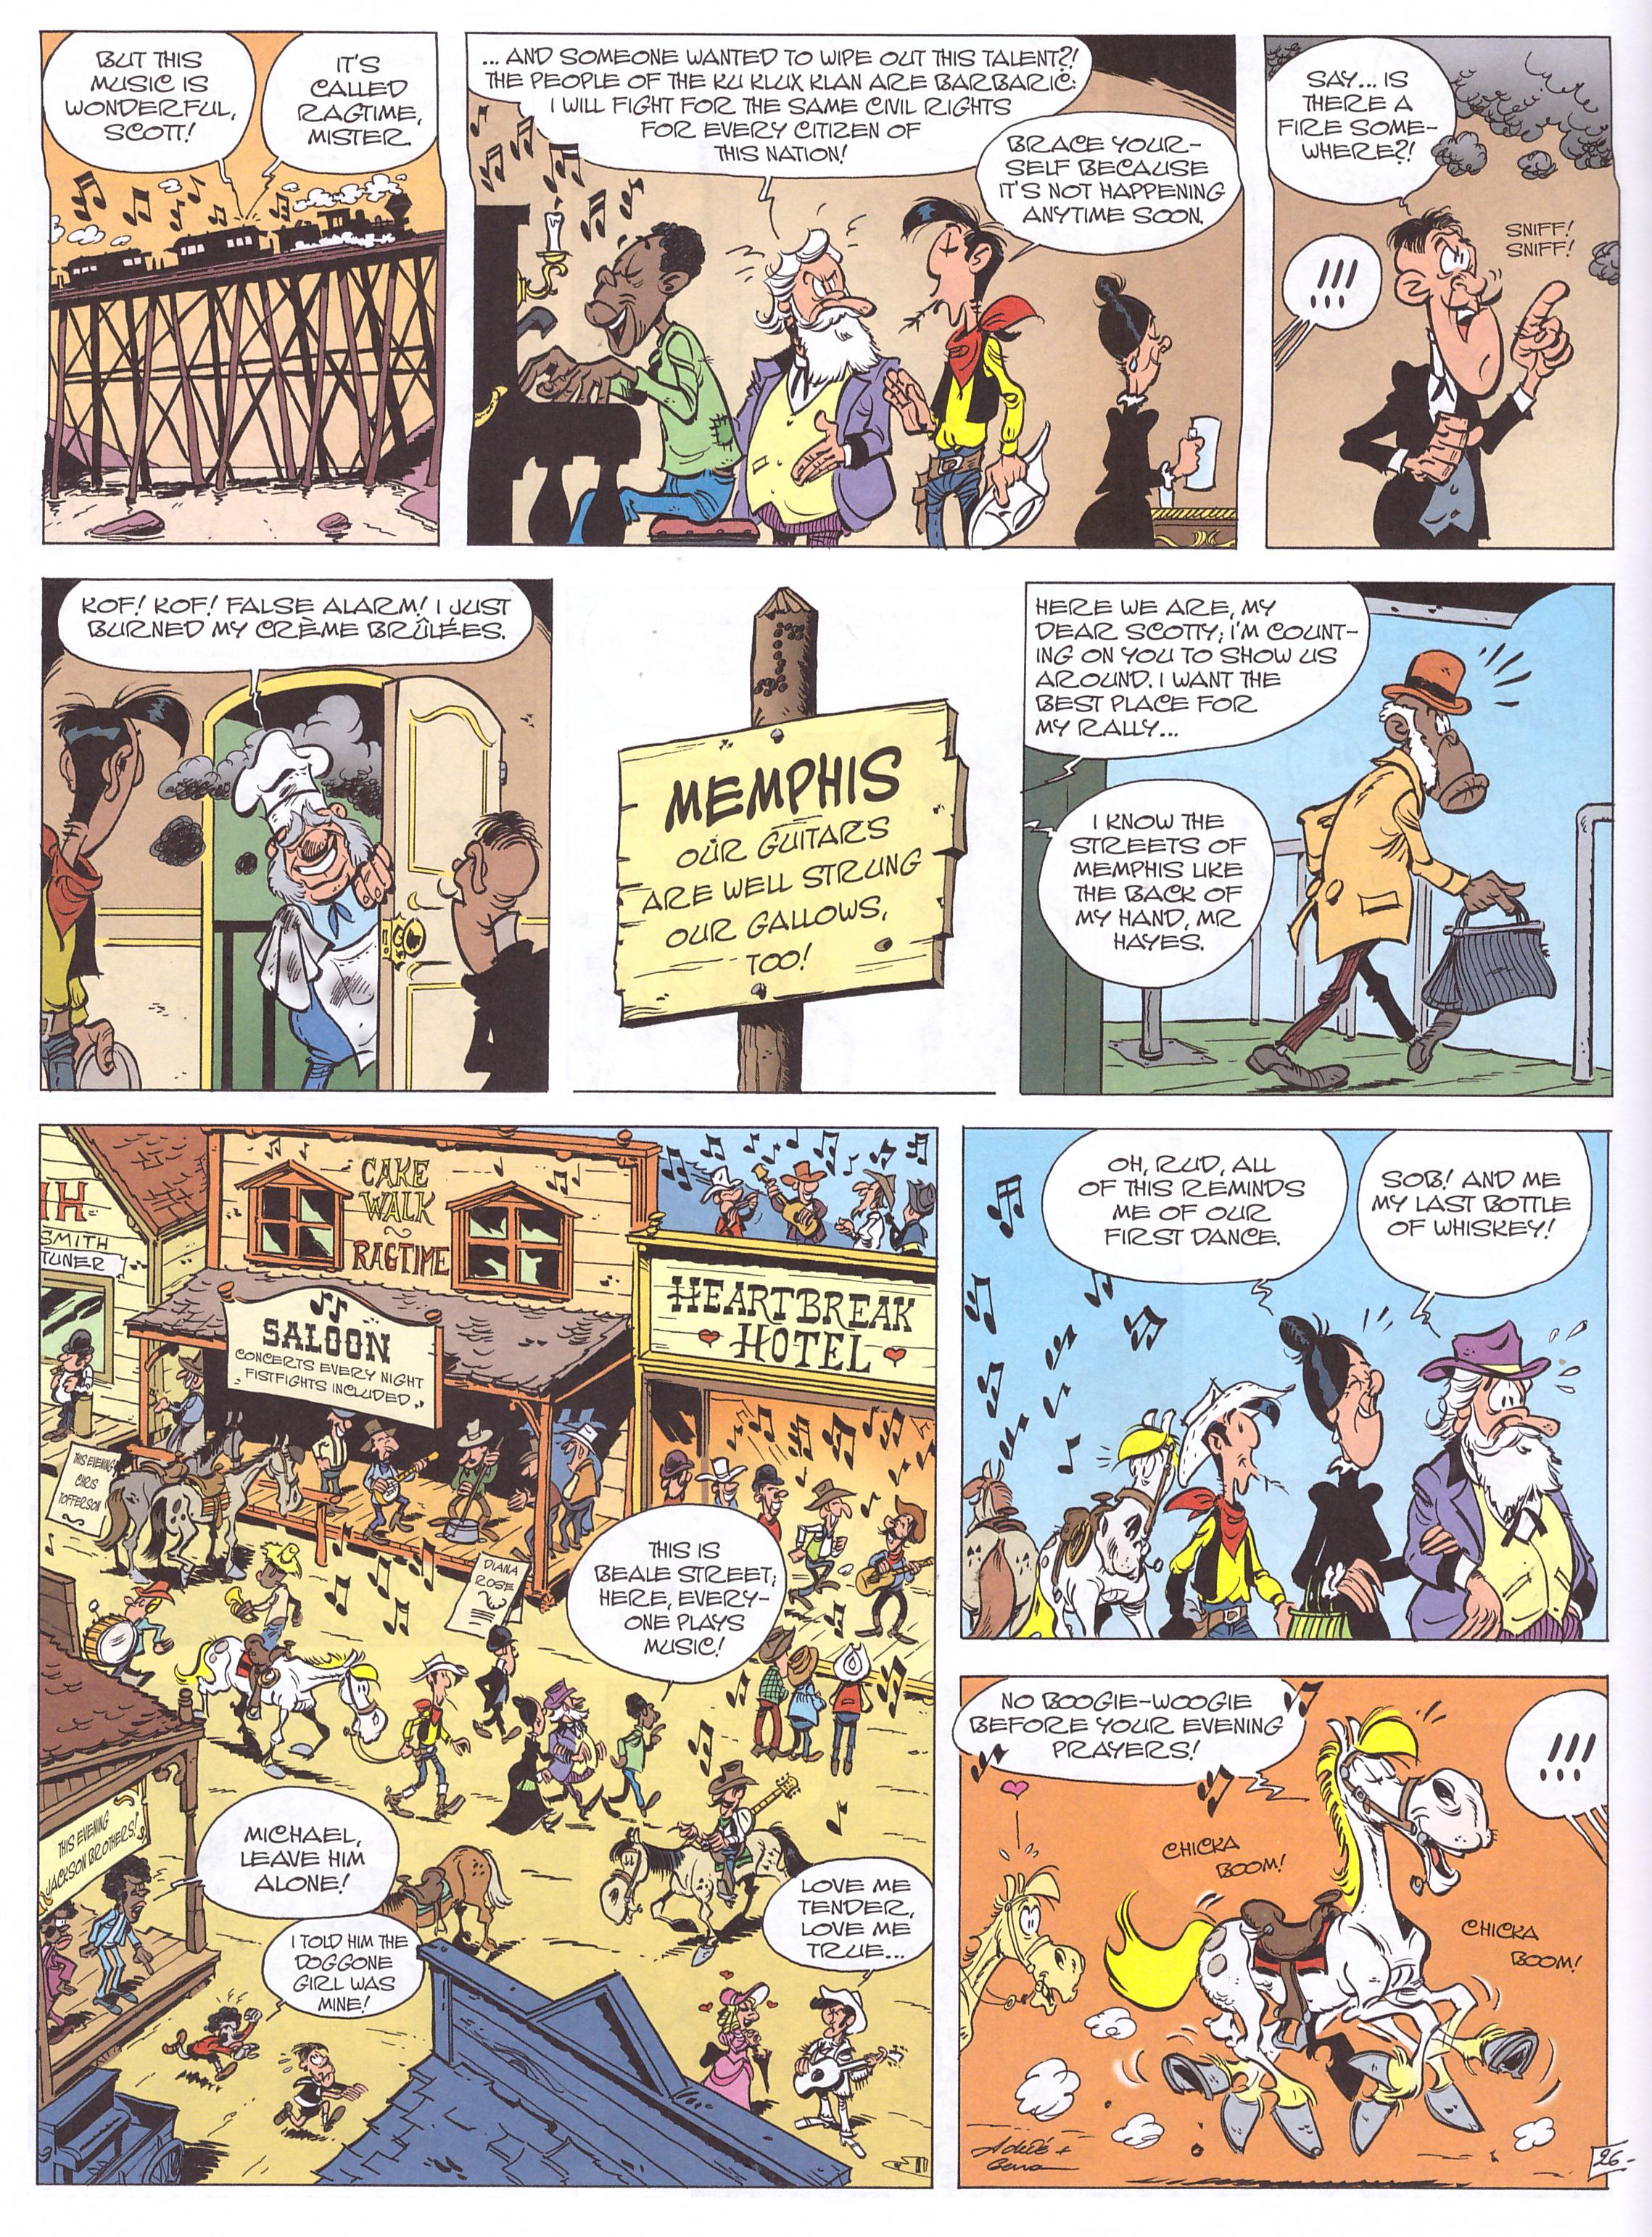 Lucky Luke The Man From Washington review